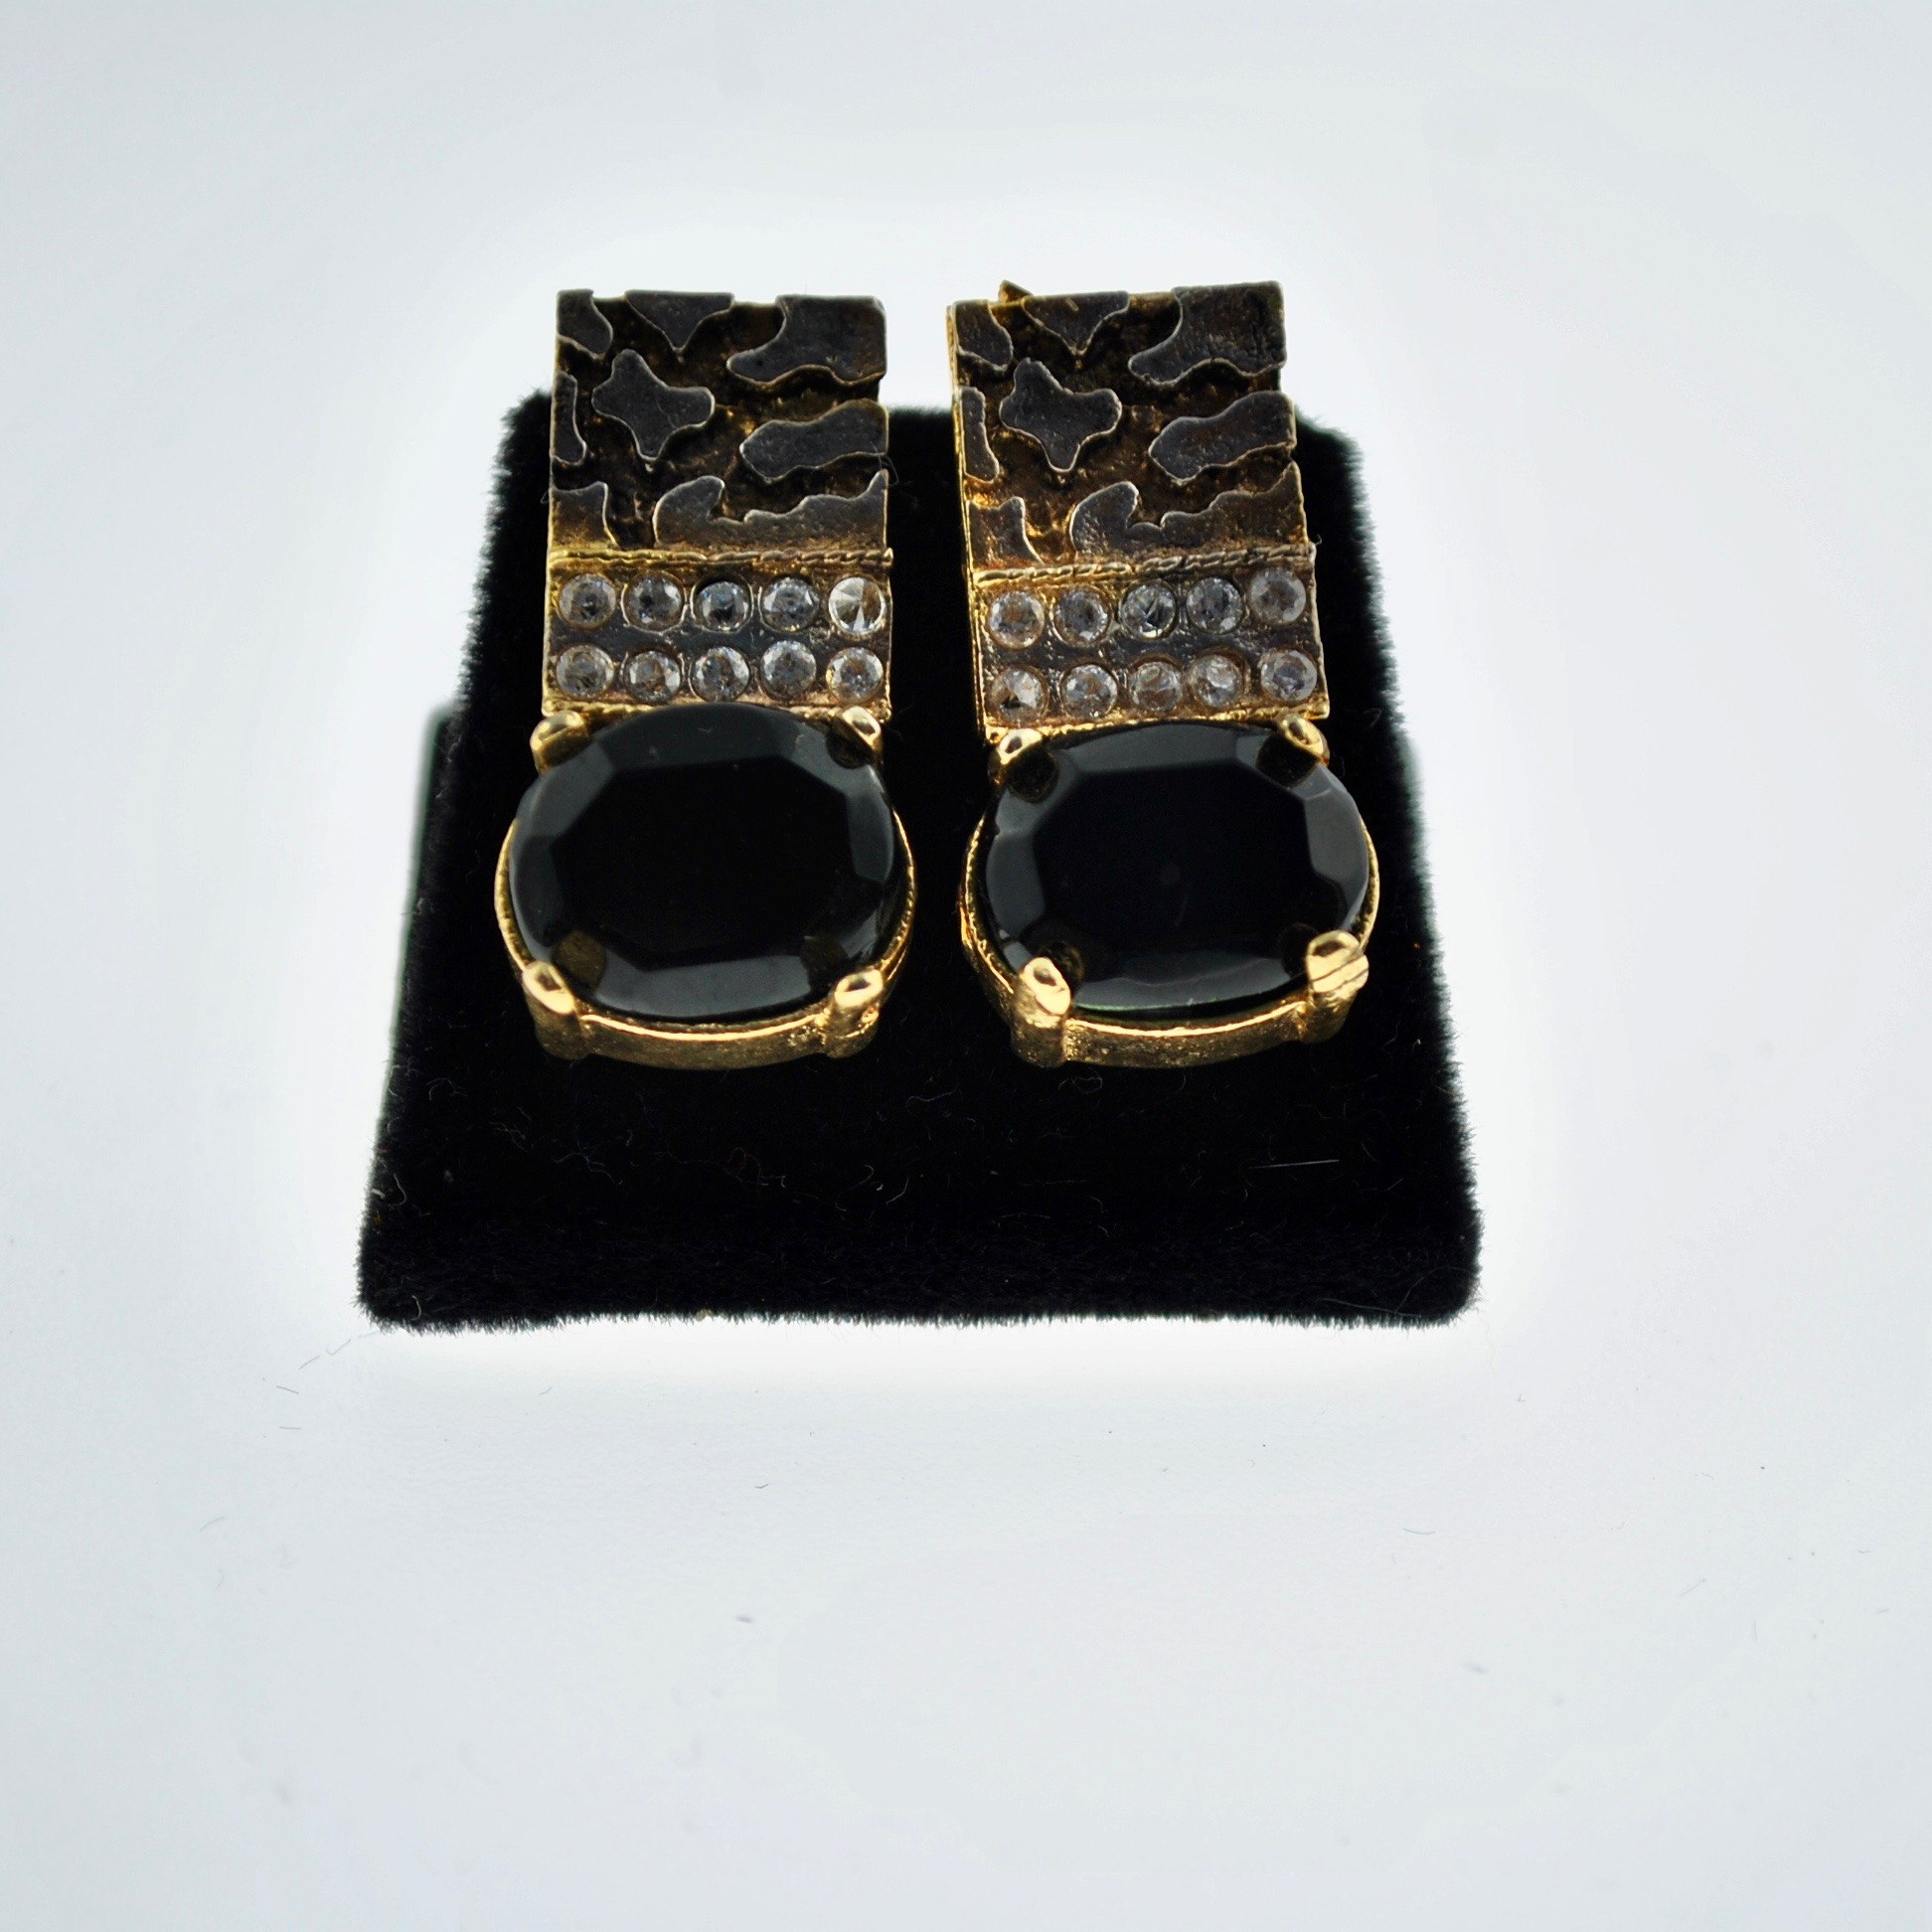 Black, Silver and Gold Earrings